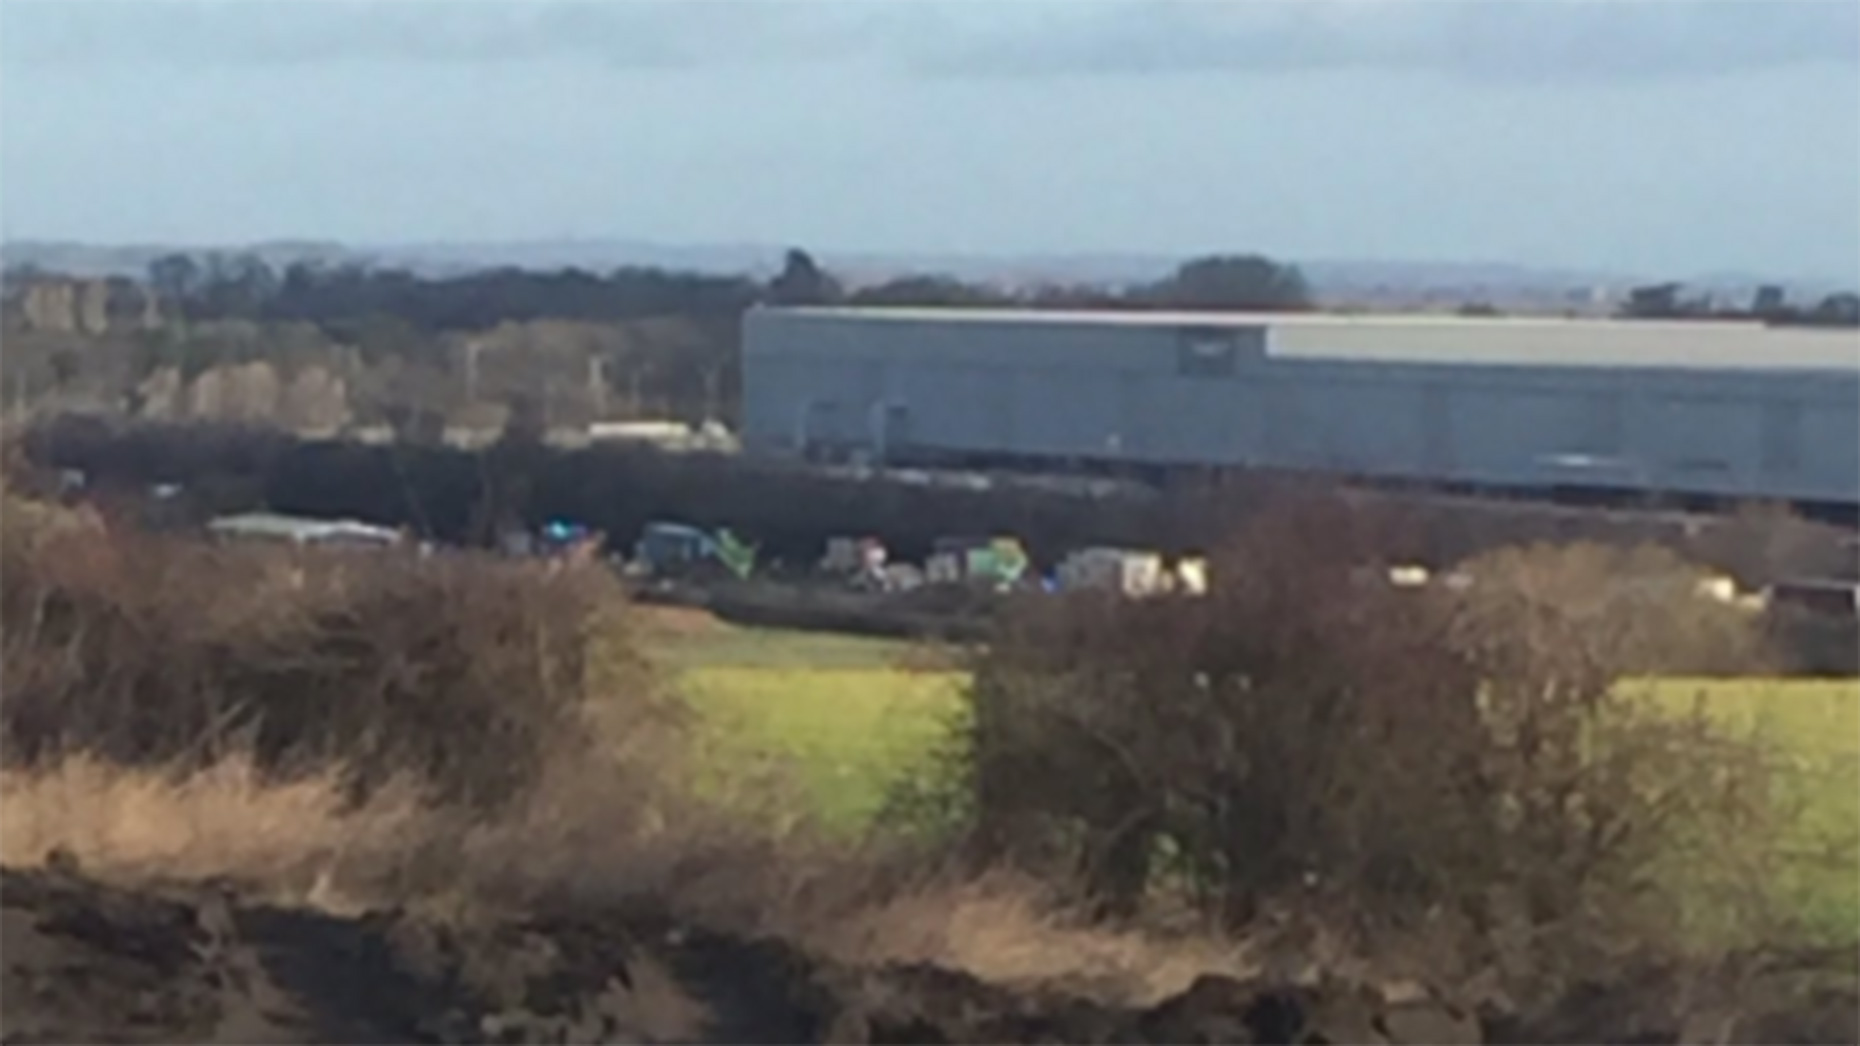 Rescue operation: Pictures show scale of A1 crash near Newark